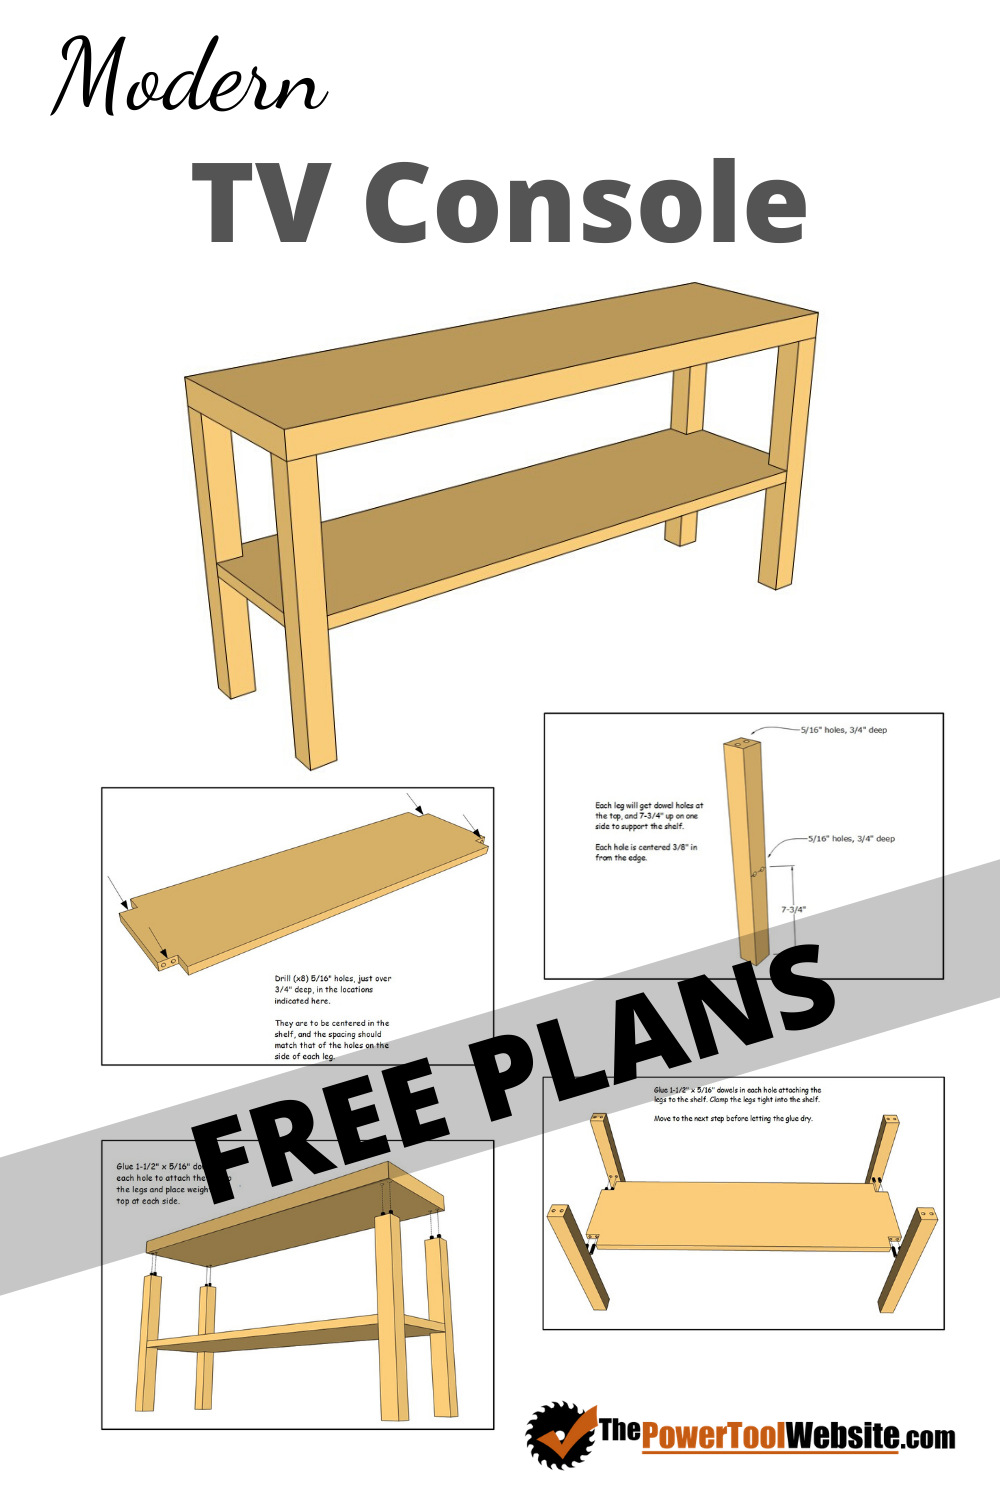 Modern Tv Console Free Projects Plans With Instructions Easy Woodworking Projects Easy Wood Projects Free Furniture Plans